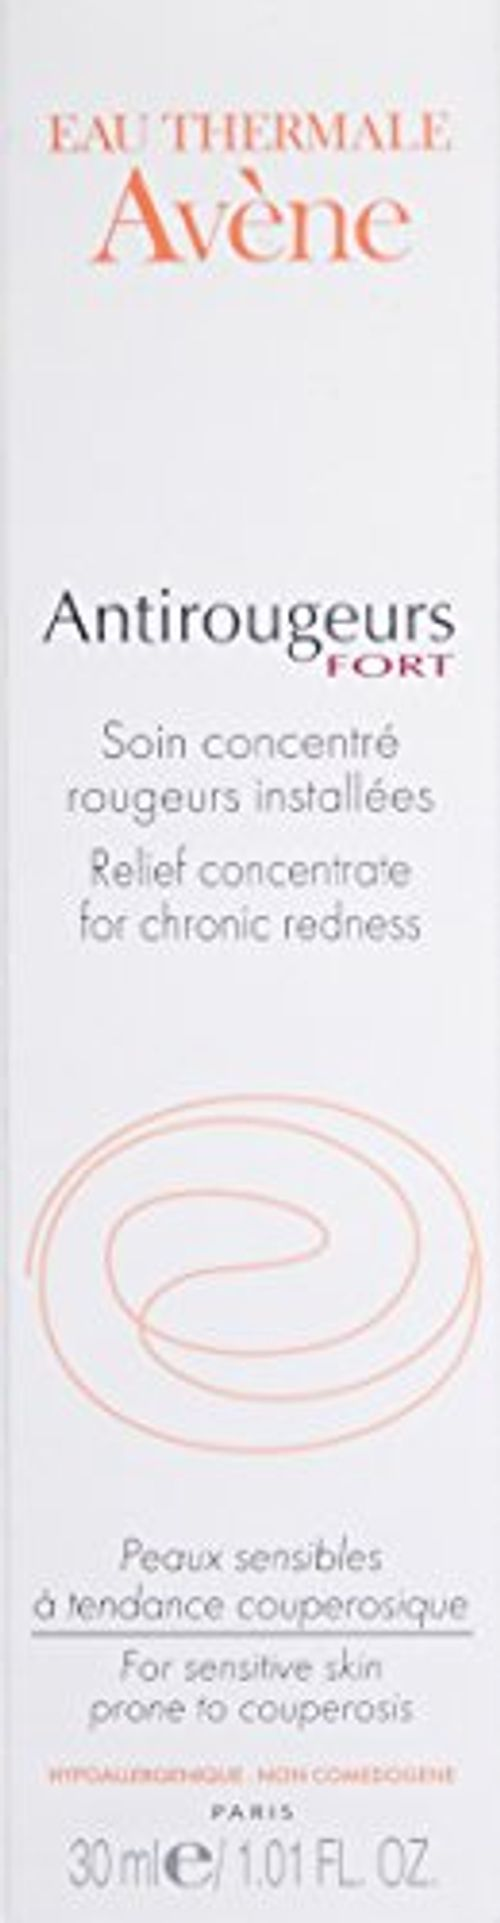 photo Wallpaper of Avene-AVENE Antirojeces Fuerte Cuidado Concentrado 30ML-